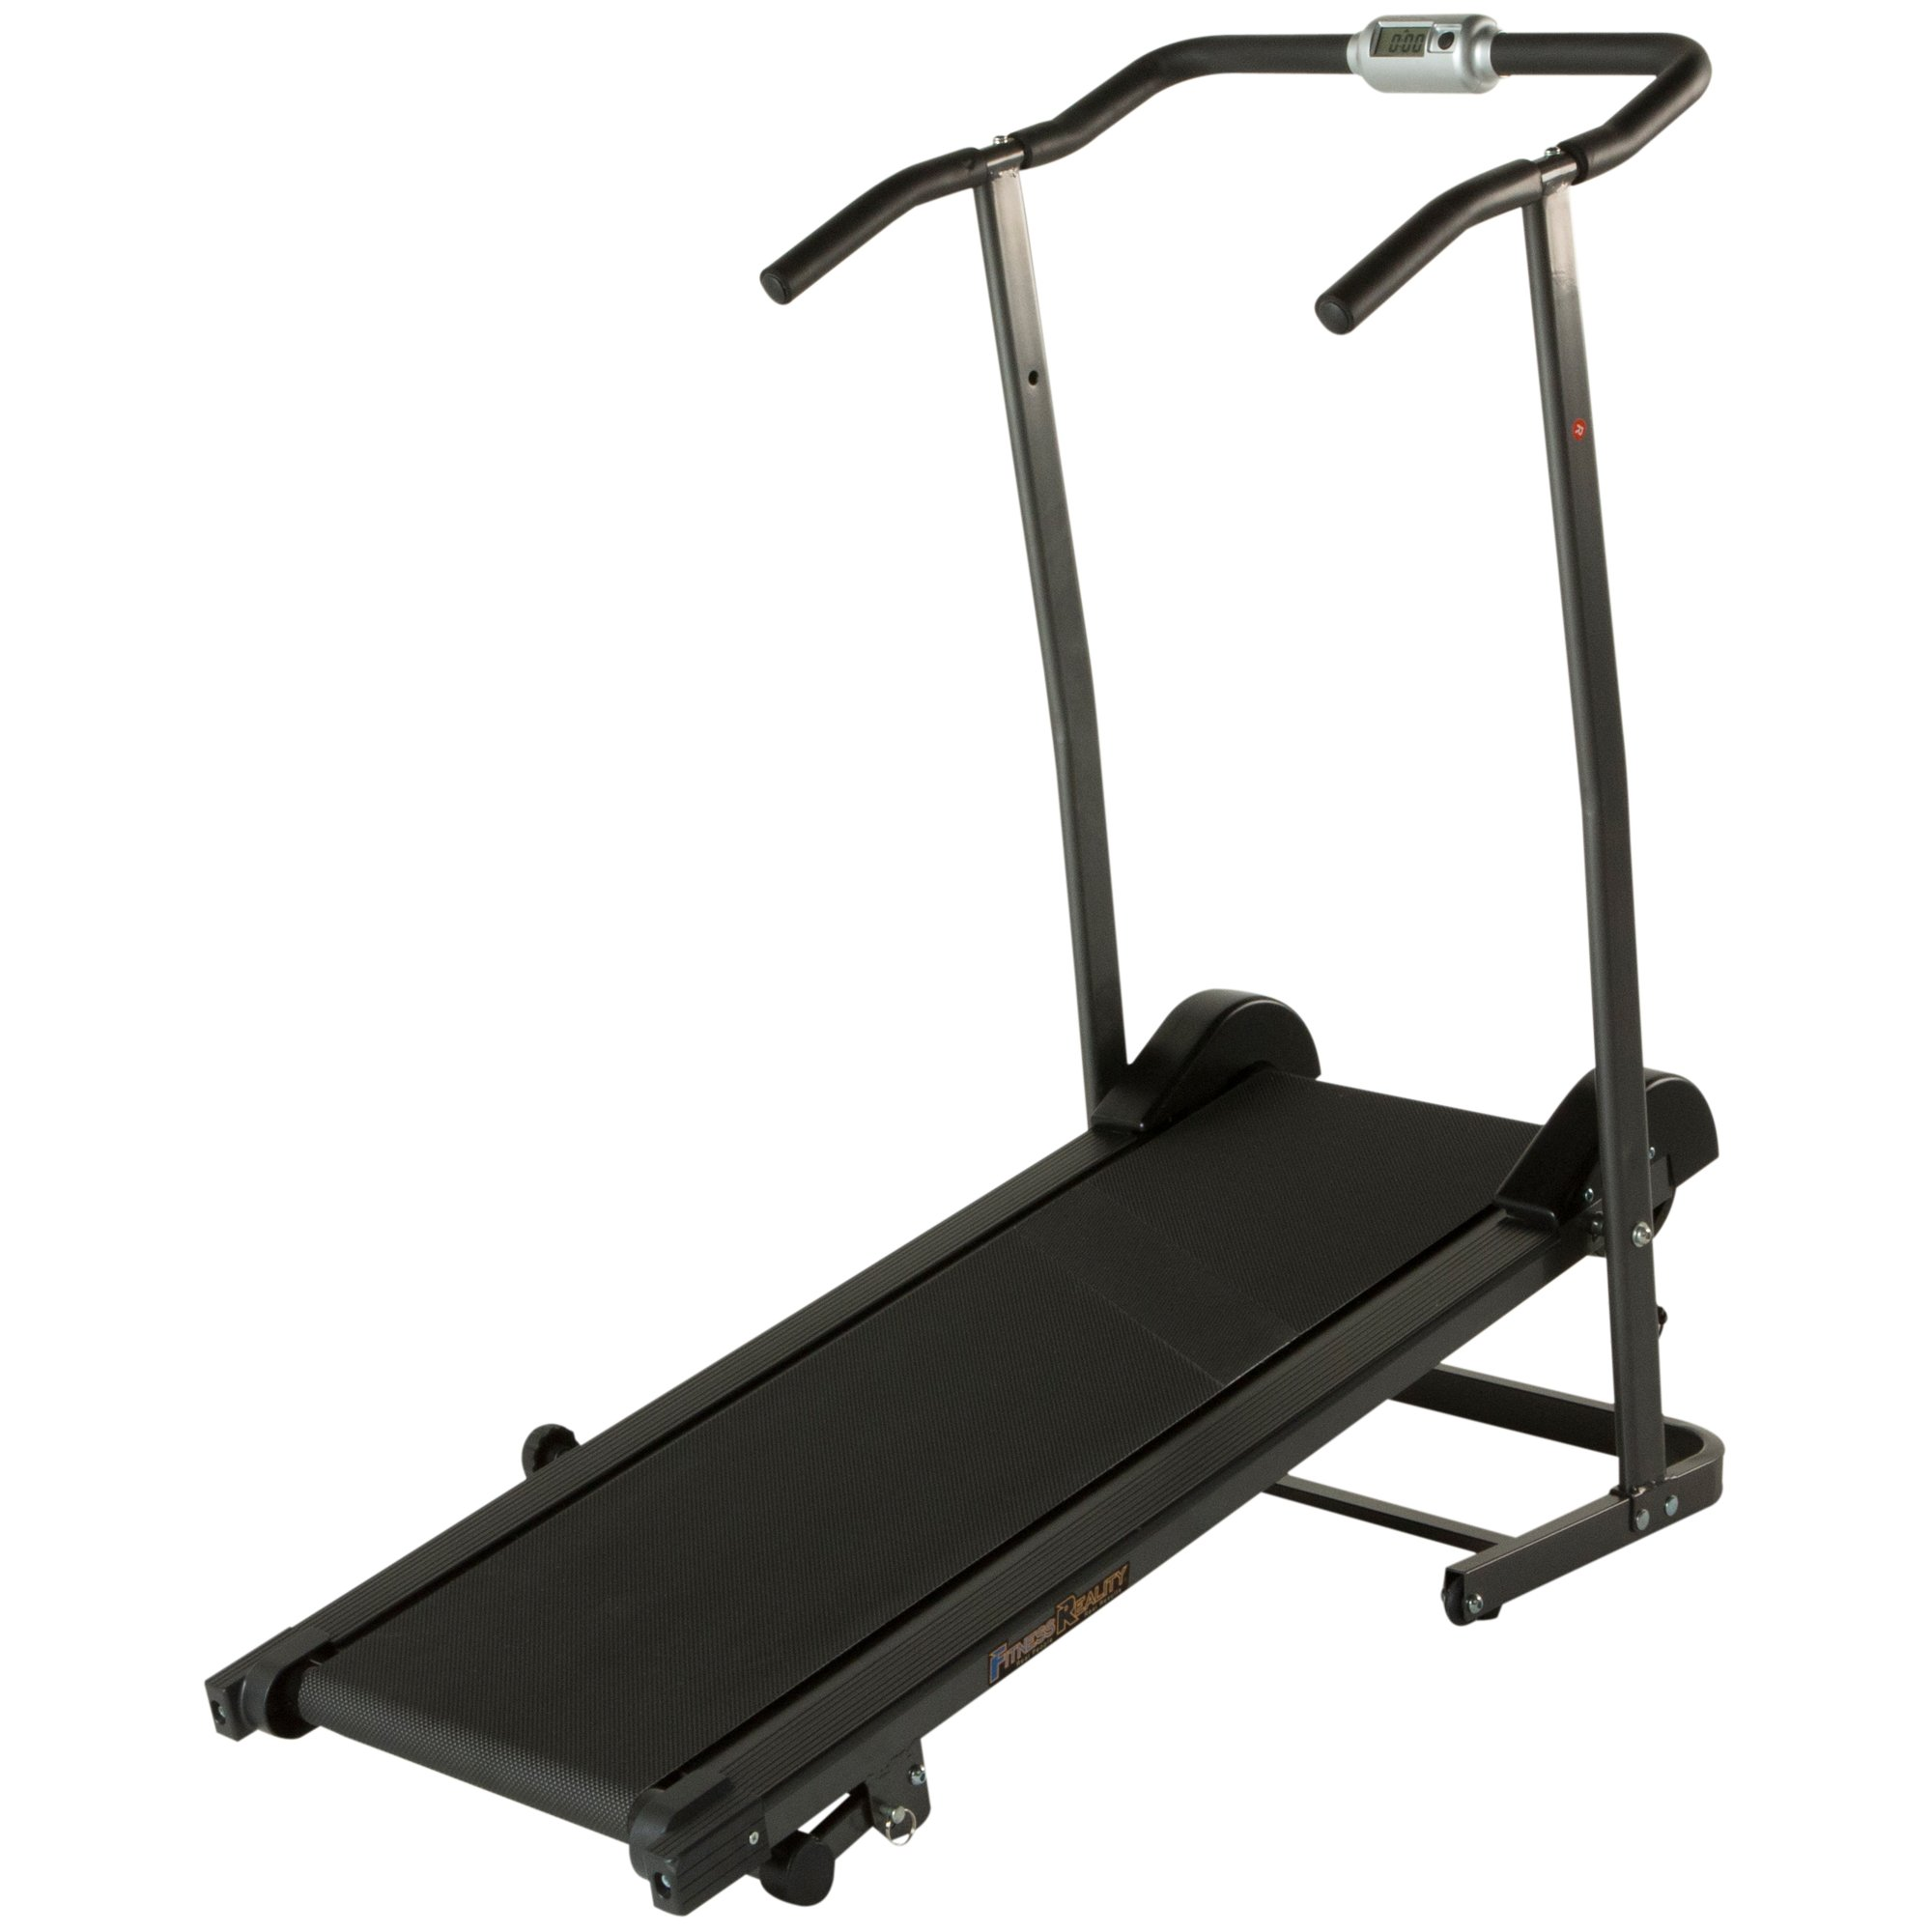 Fitness Reality TR1000 Manual Treadmill with 2 Level Incline & Twin Flywheels by Fitness Reality (Image #2)